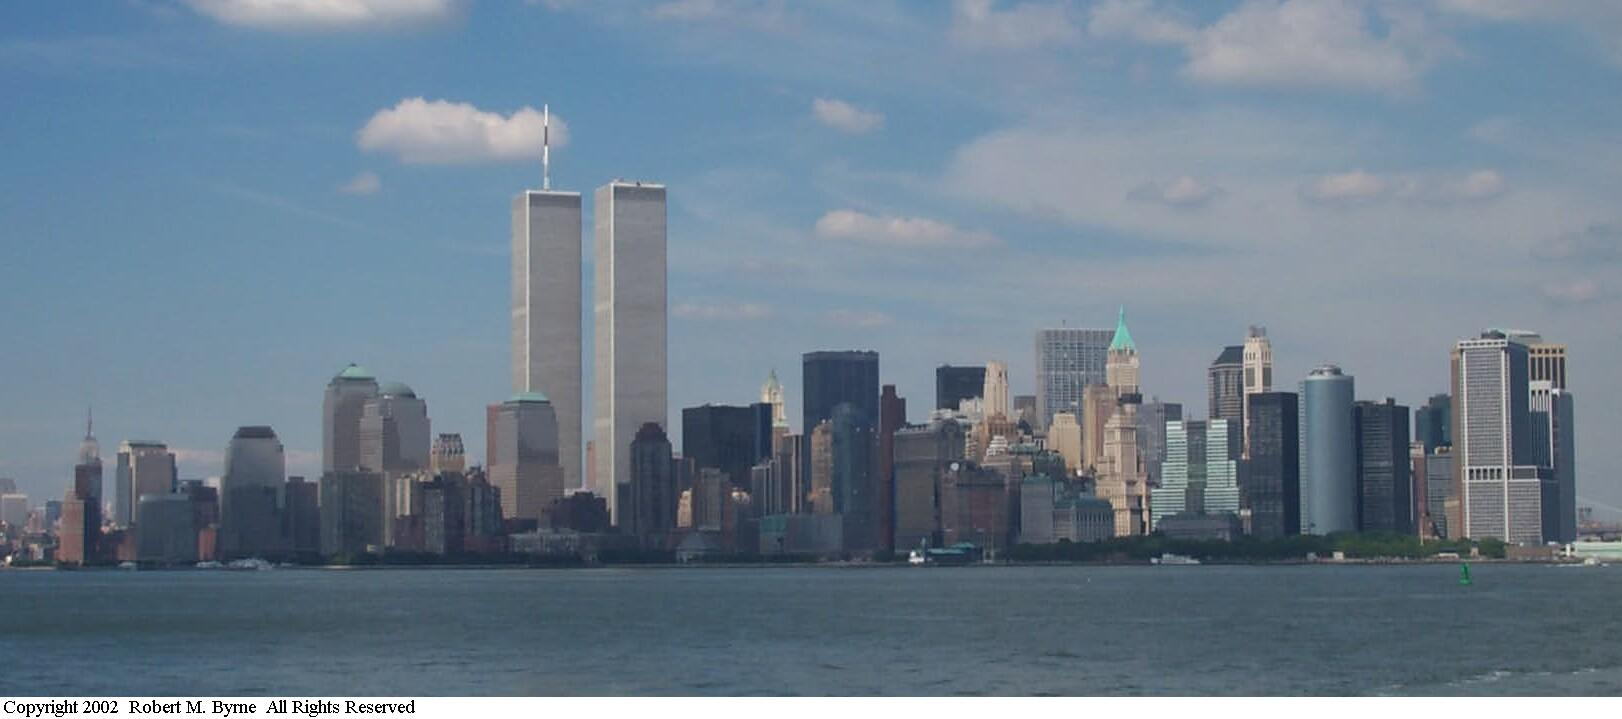 Brisas del Caribe New York City, Images of the World Trade Center, New York City by Yamasaki ...